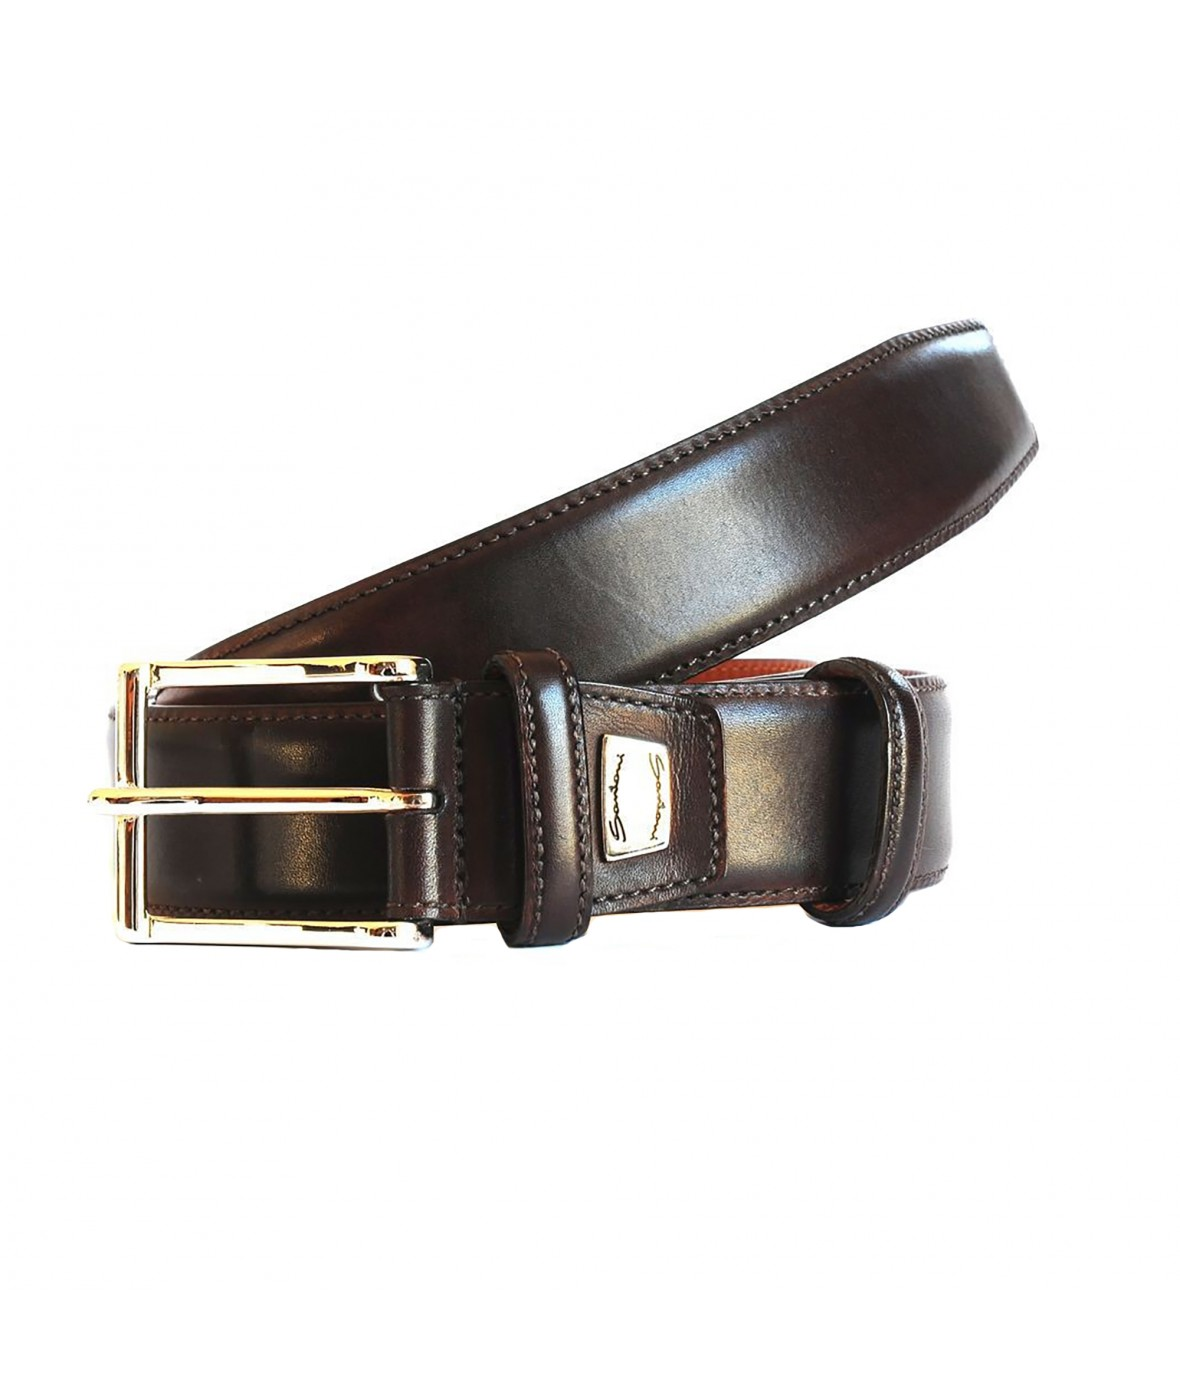 Santoni Belt Leather (386)